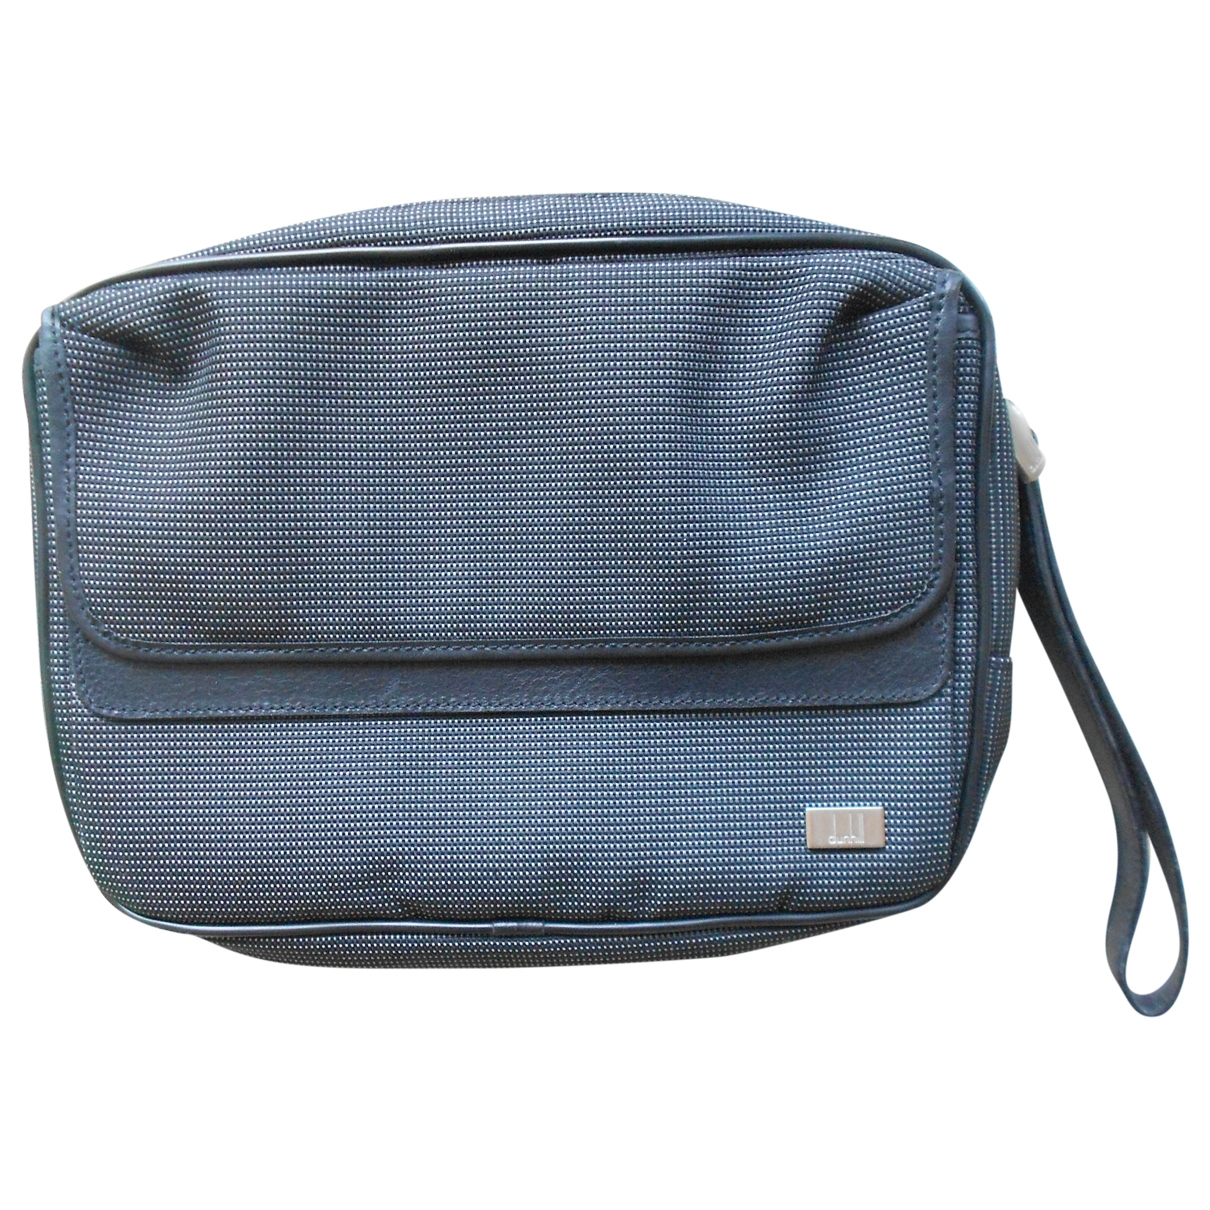 Alfred Dunhill - Petite maroquinerie   pour homme en toile - anthracite